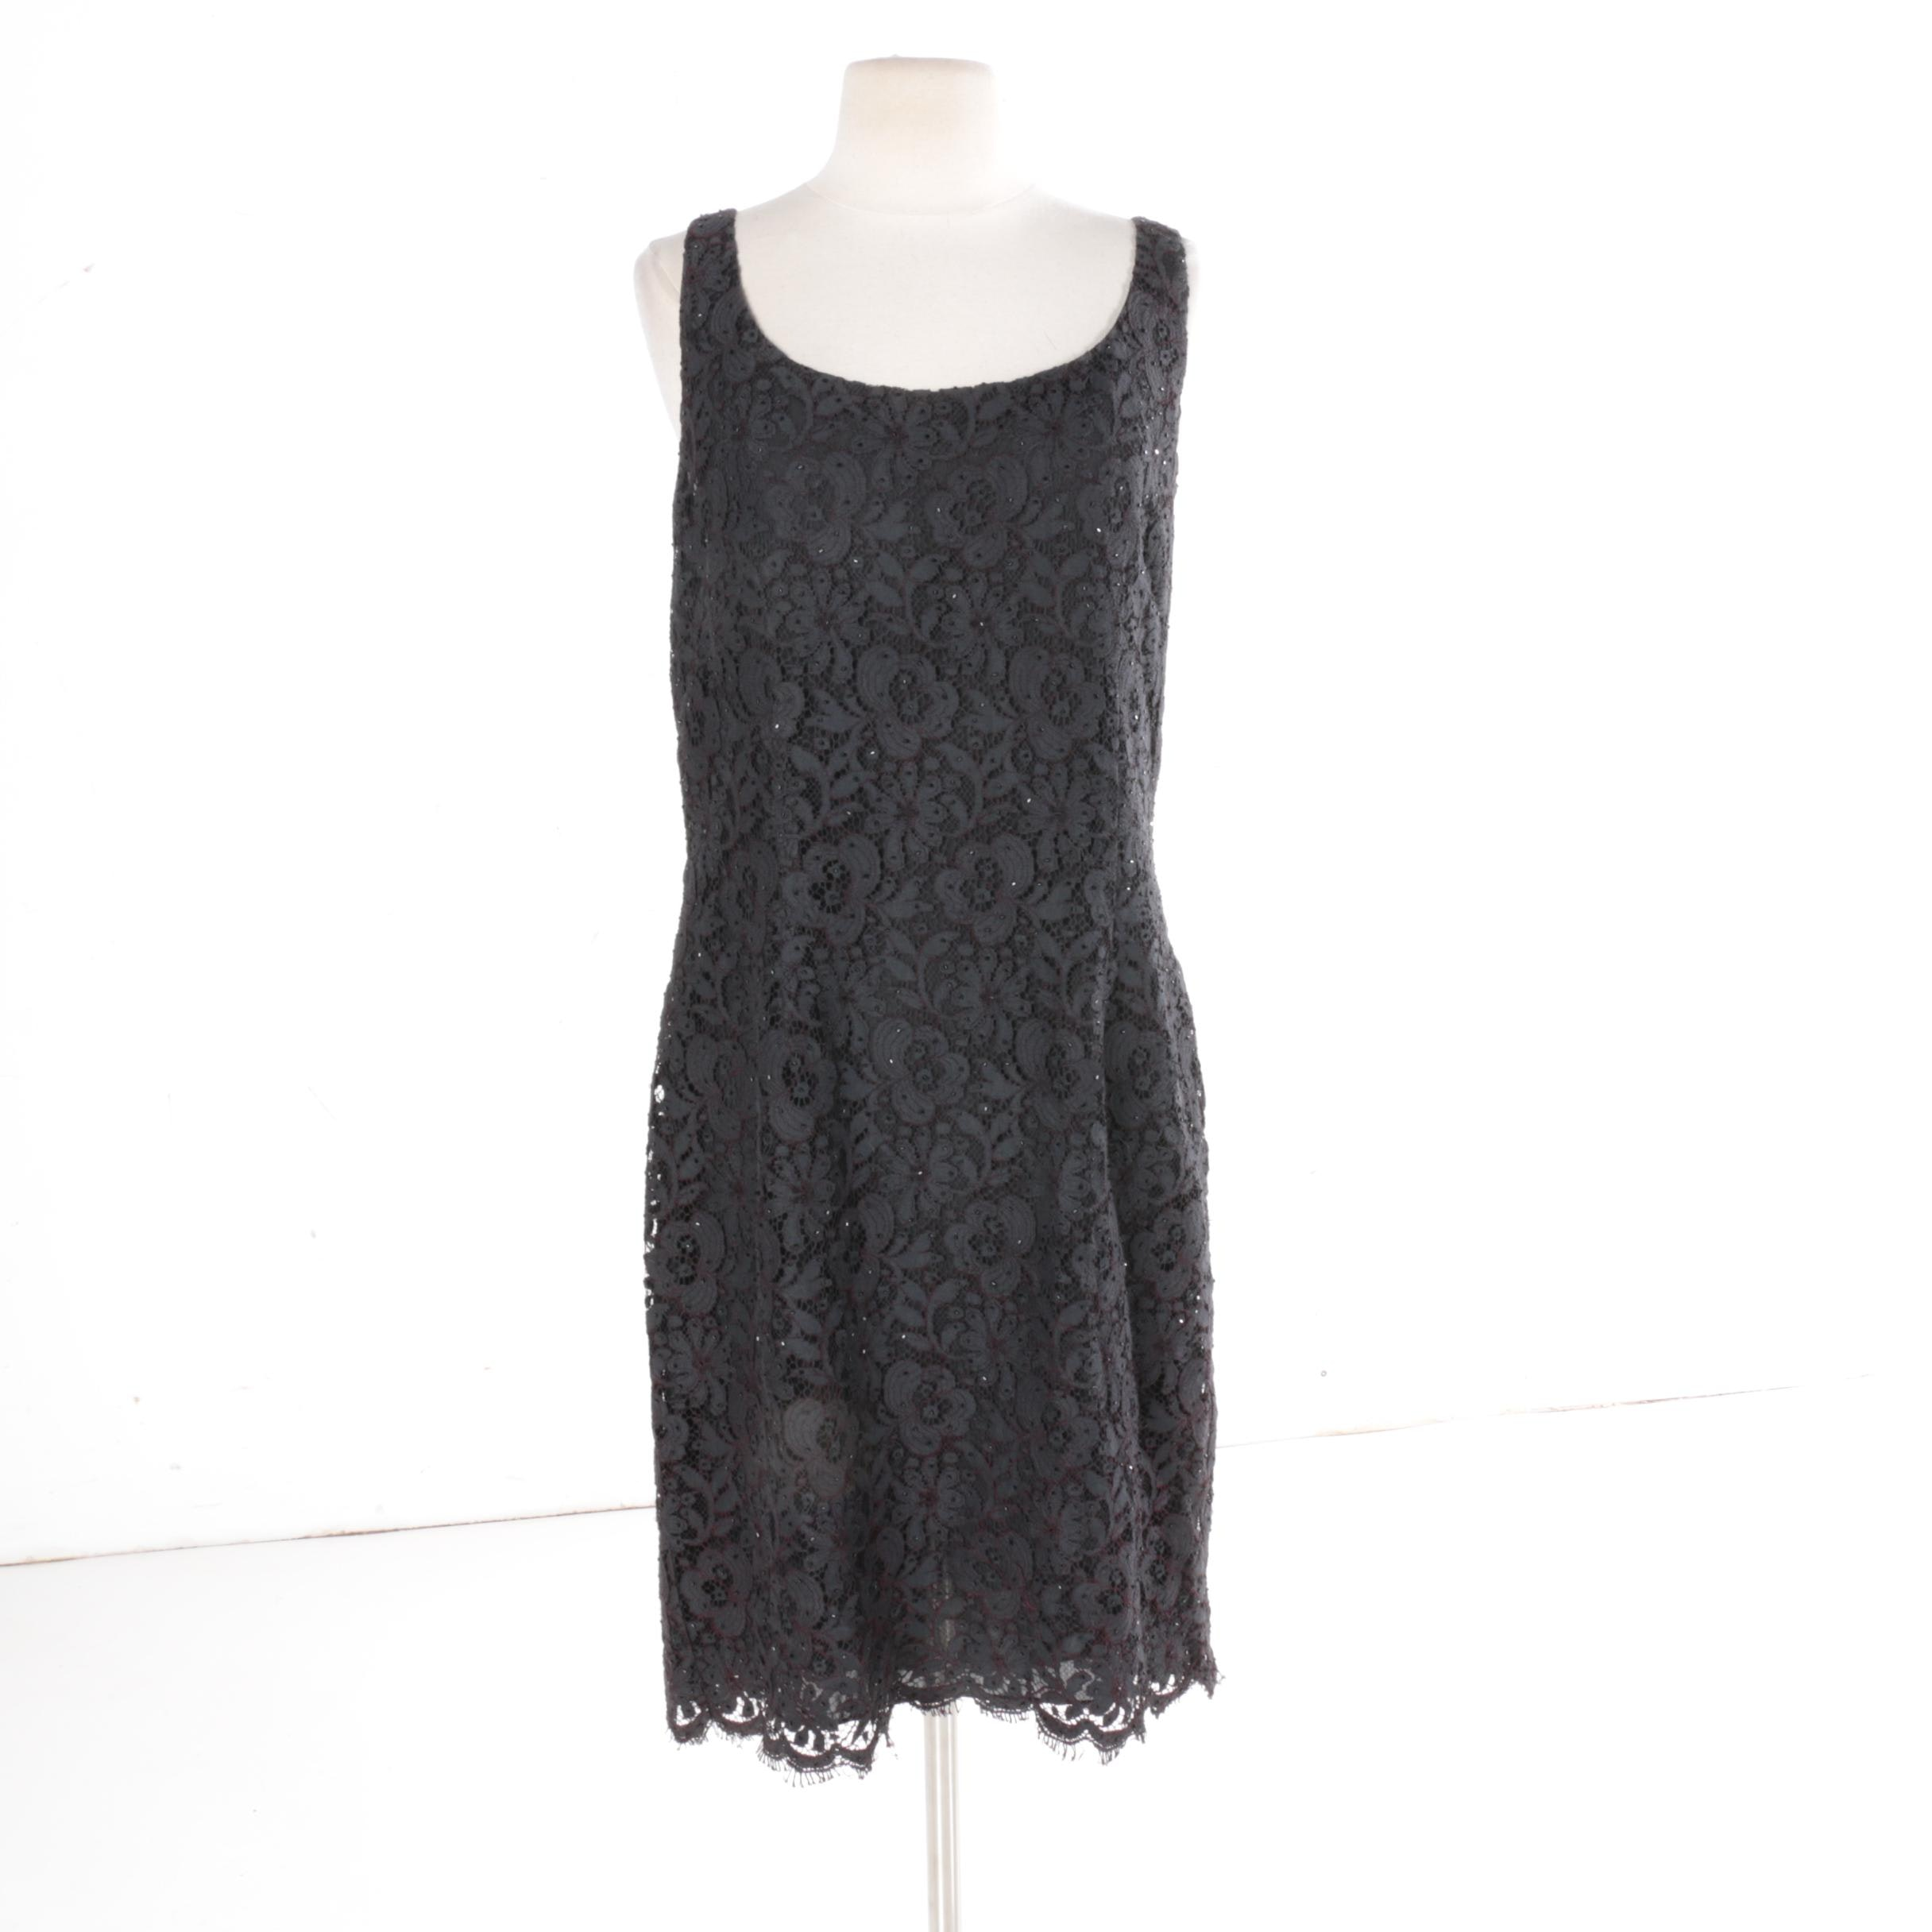 Ann Taylor Beaded Lace Dress